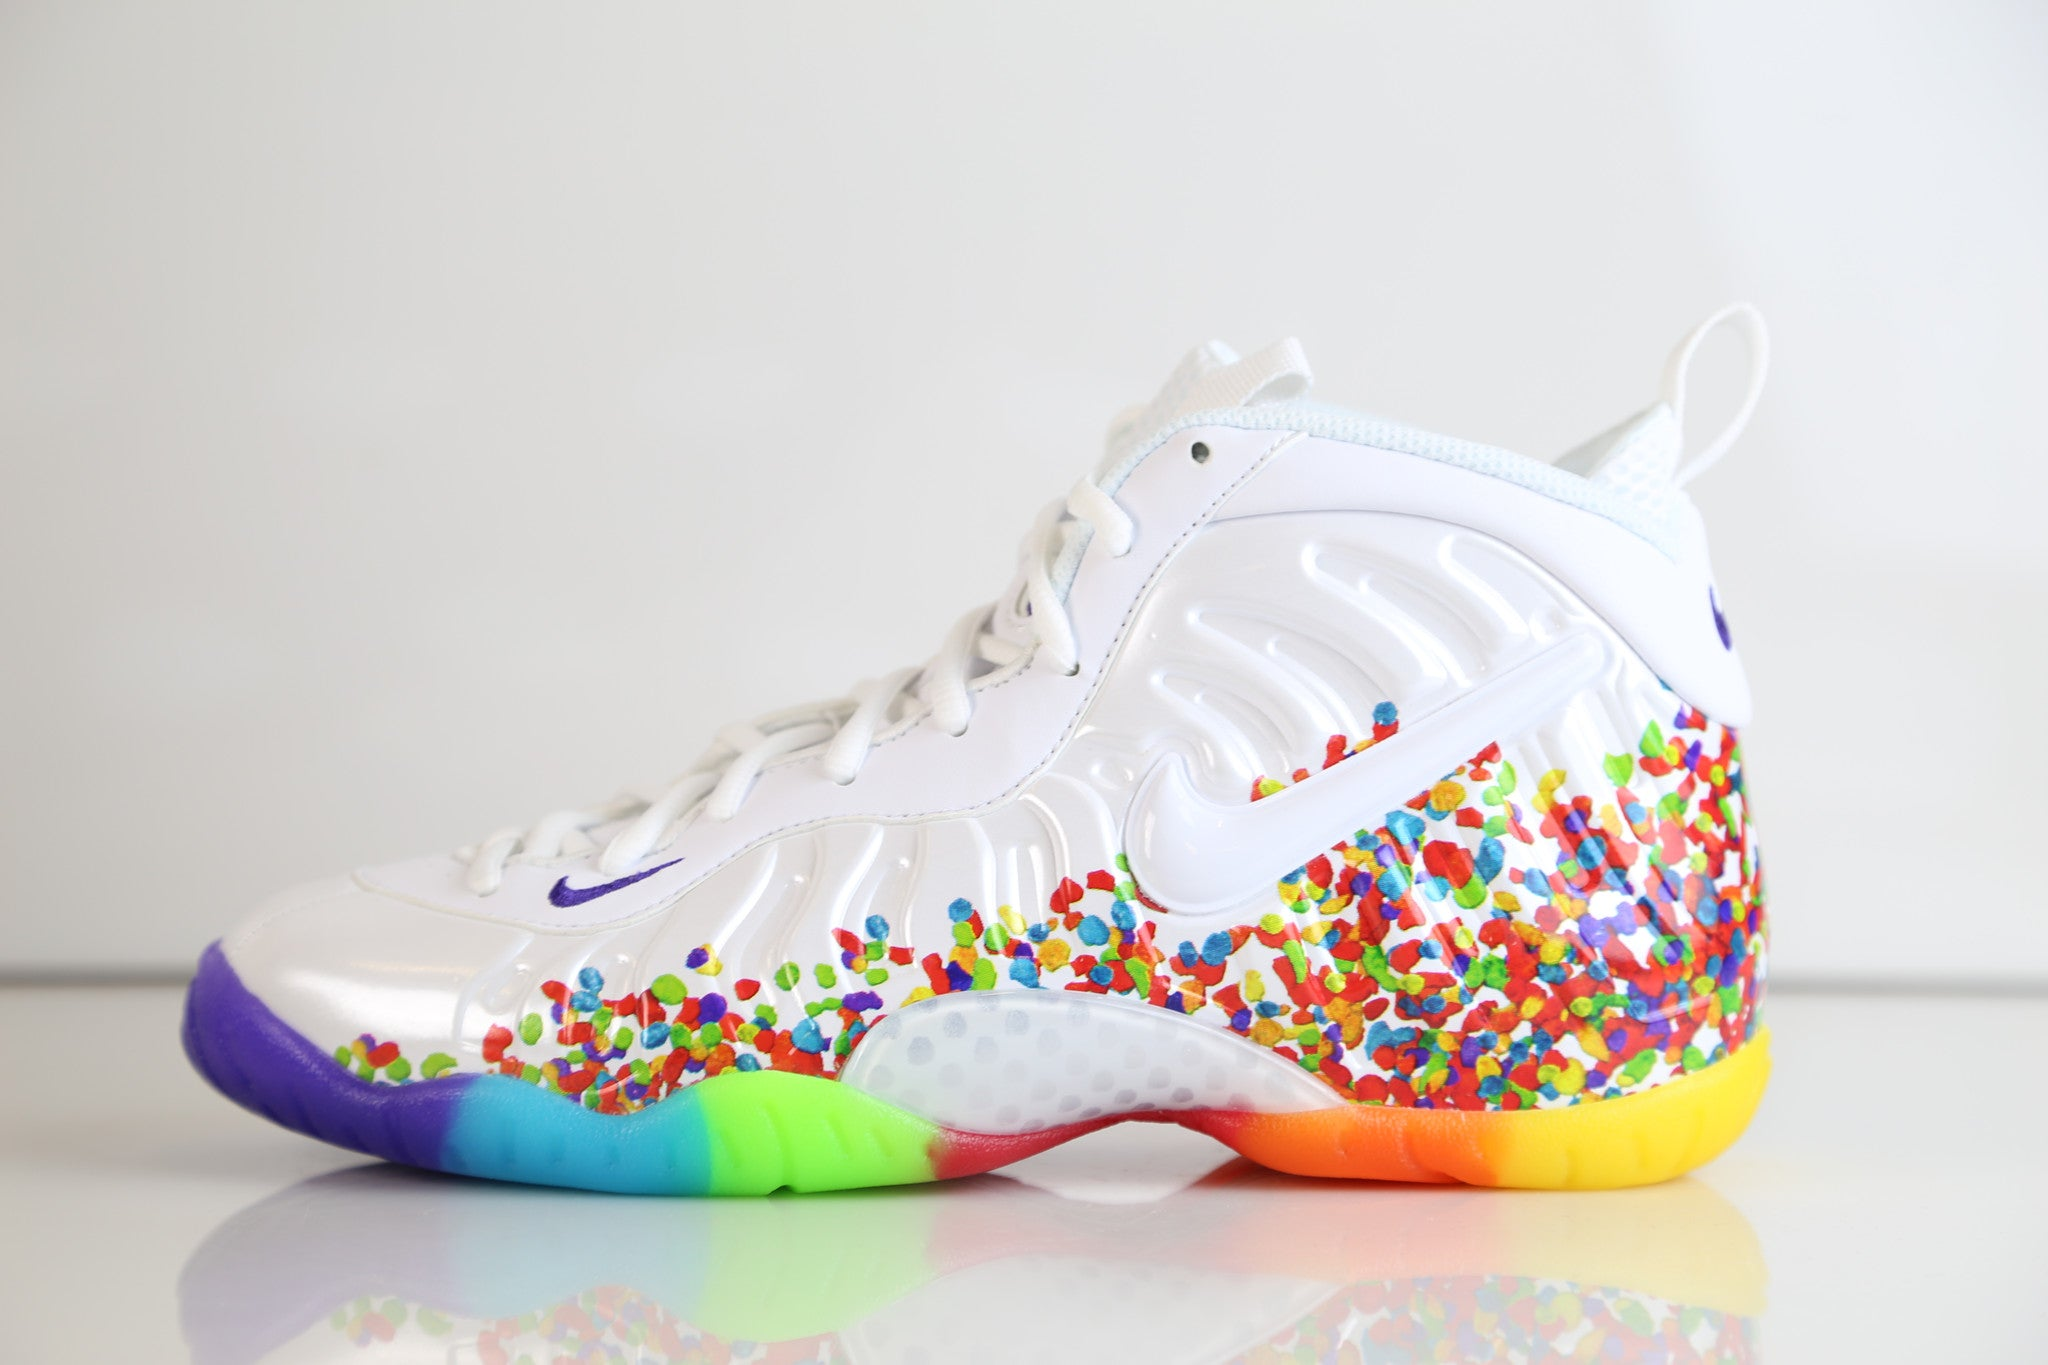 ace57d94dab7 Nike Lil Little Posite Pro Fruity Pebbles 2.0 White 644792-101 PS and